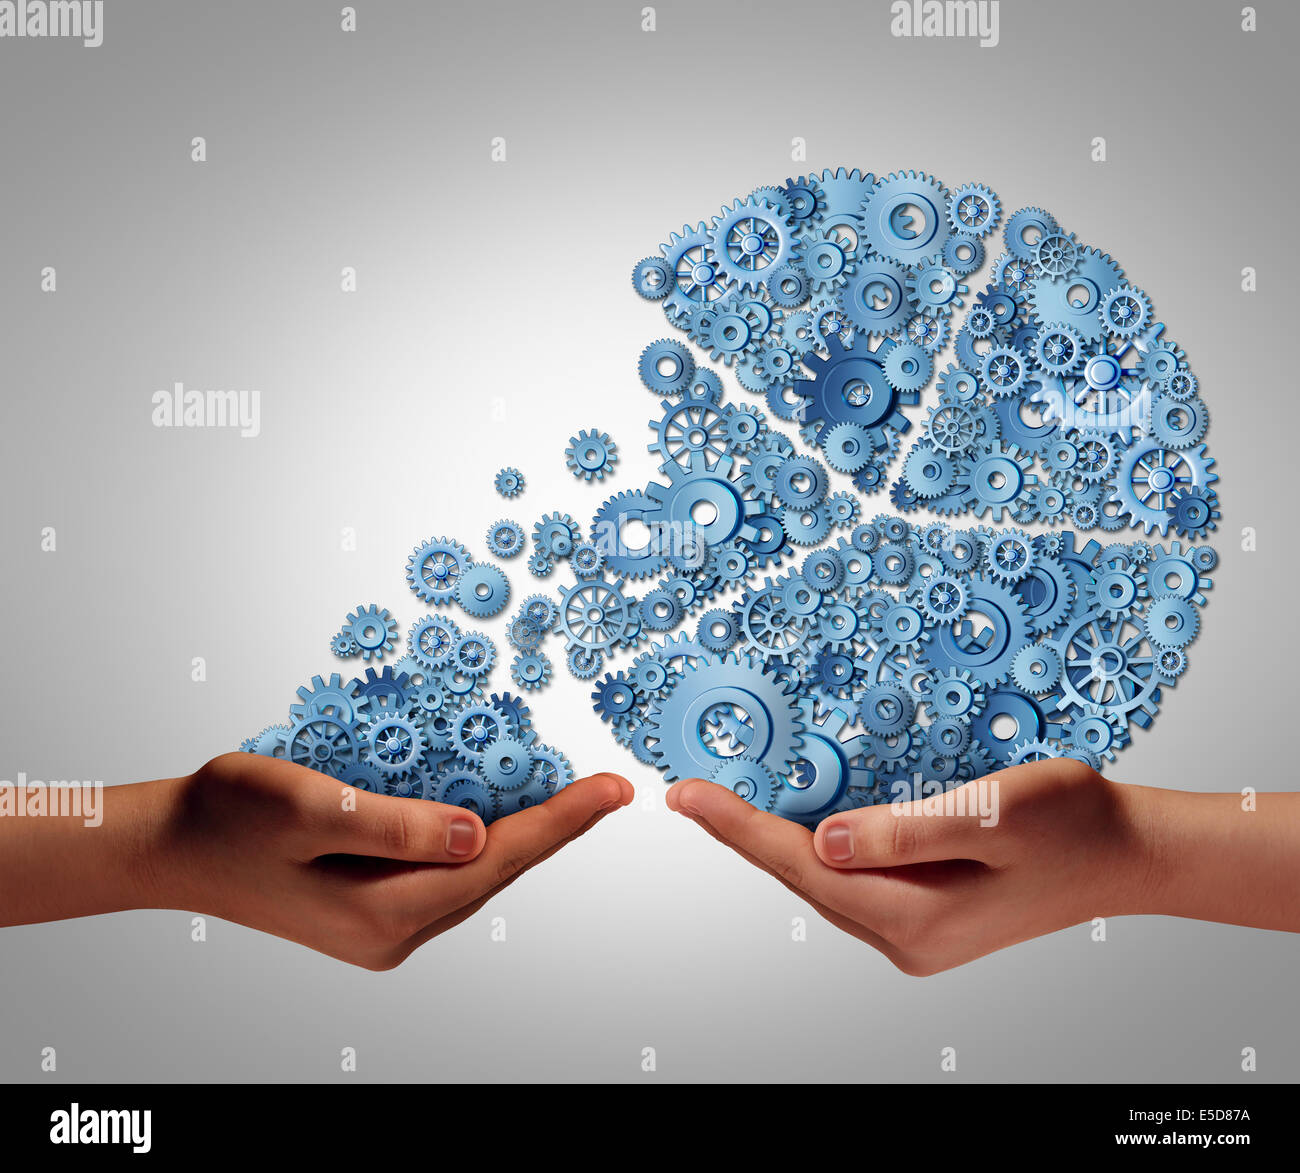 Funding and development concept as a human hand giving or taking investment from a business pie chart made of mechanical - Stock Image